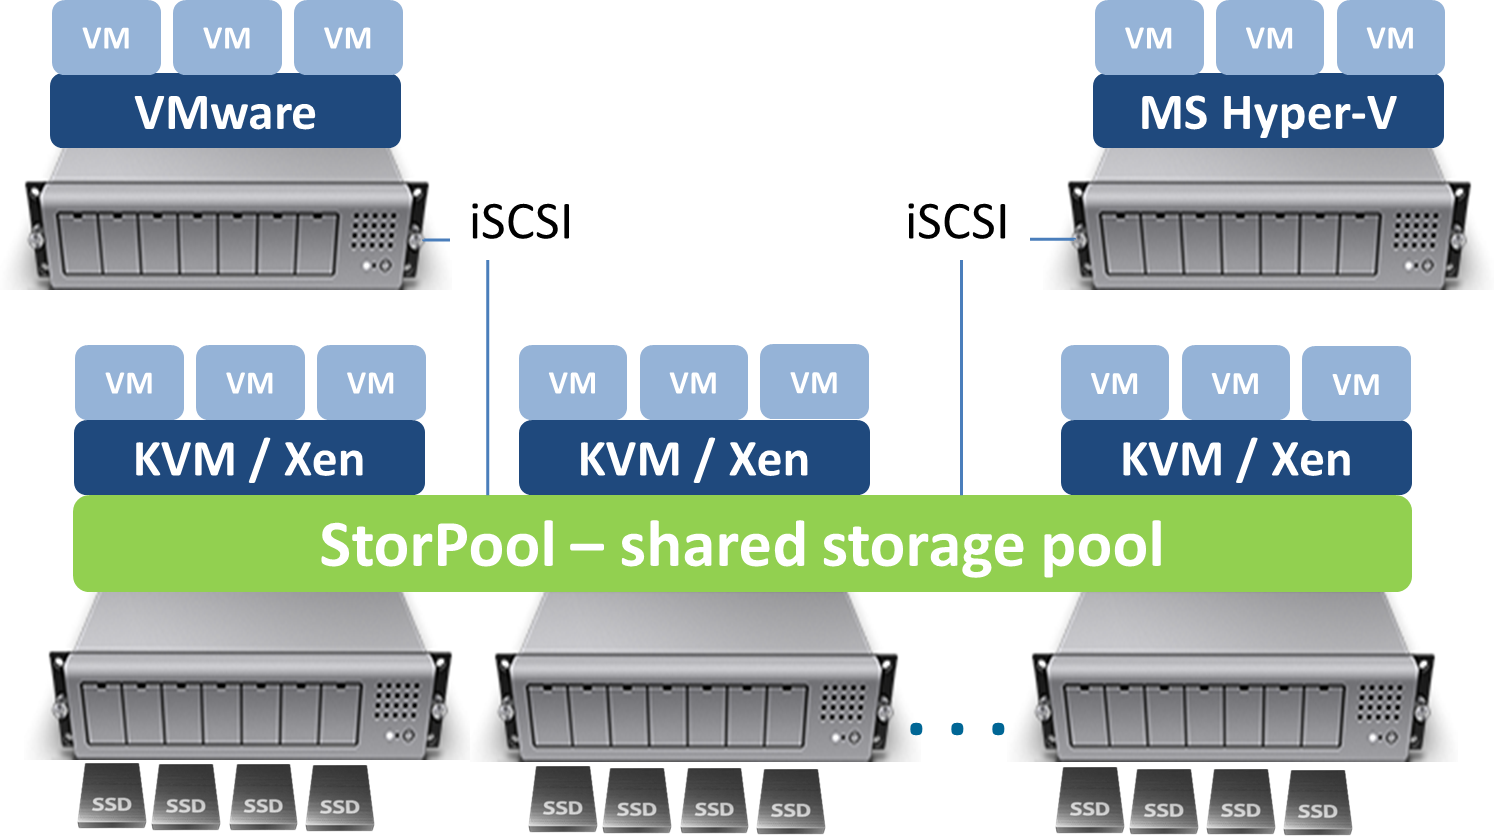 StorPool software-defined architecture